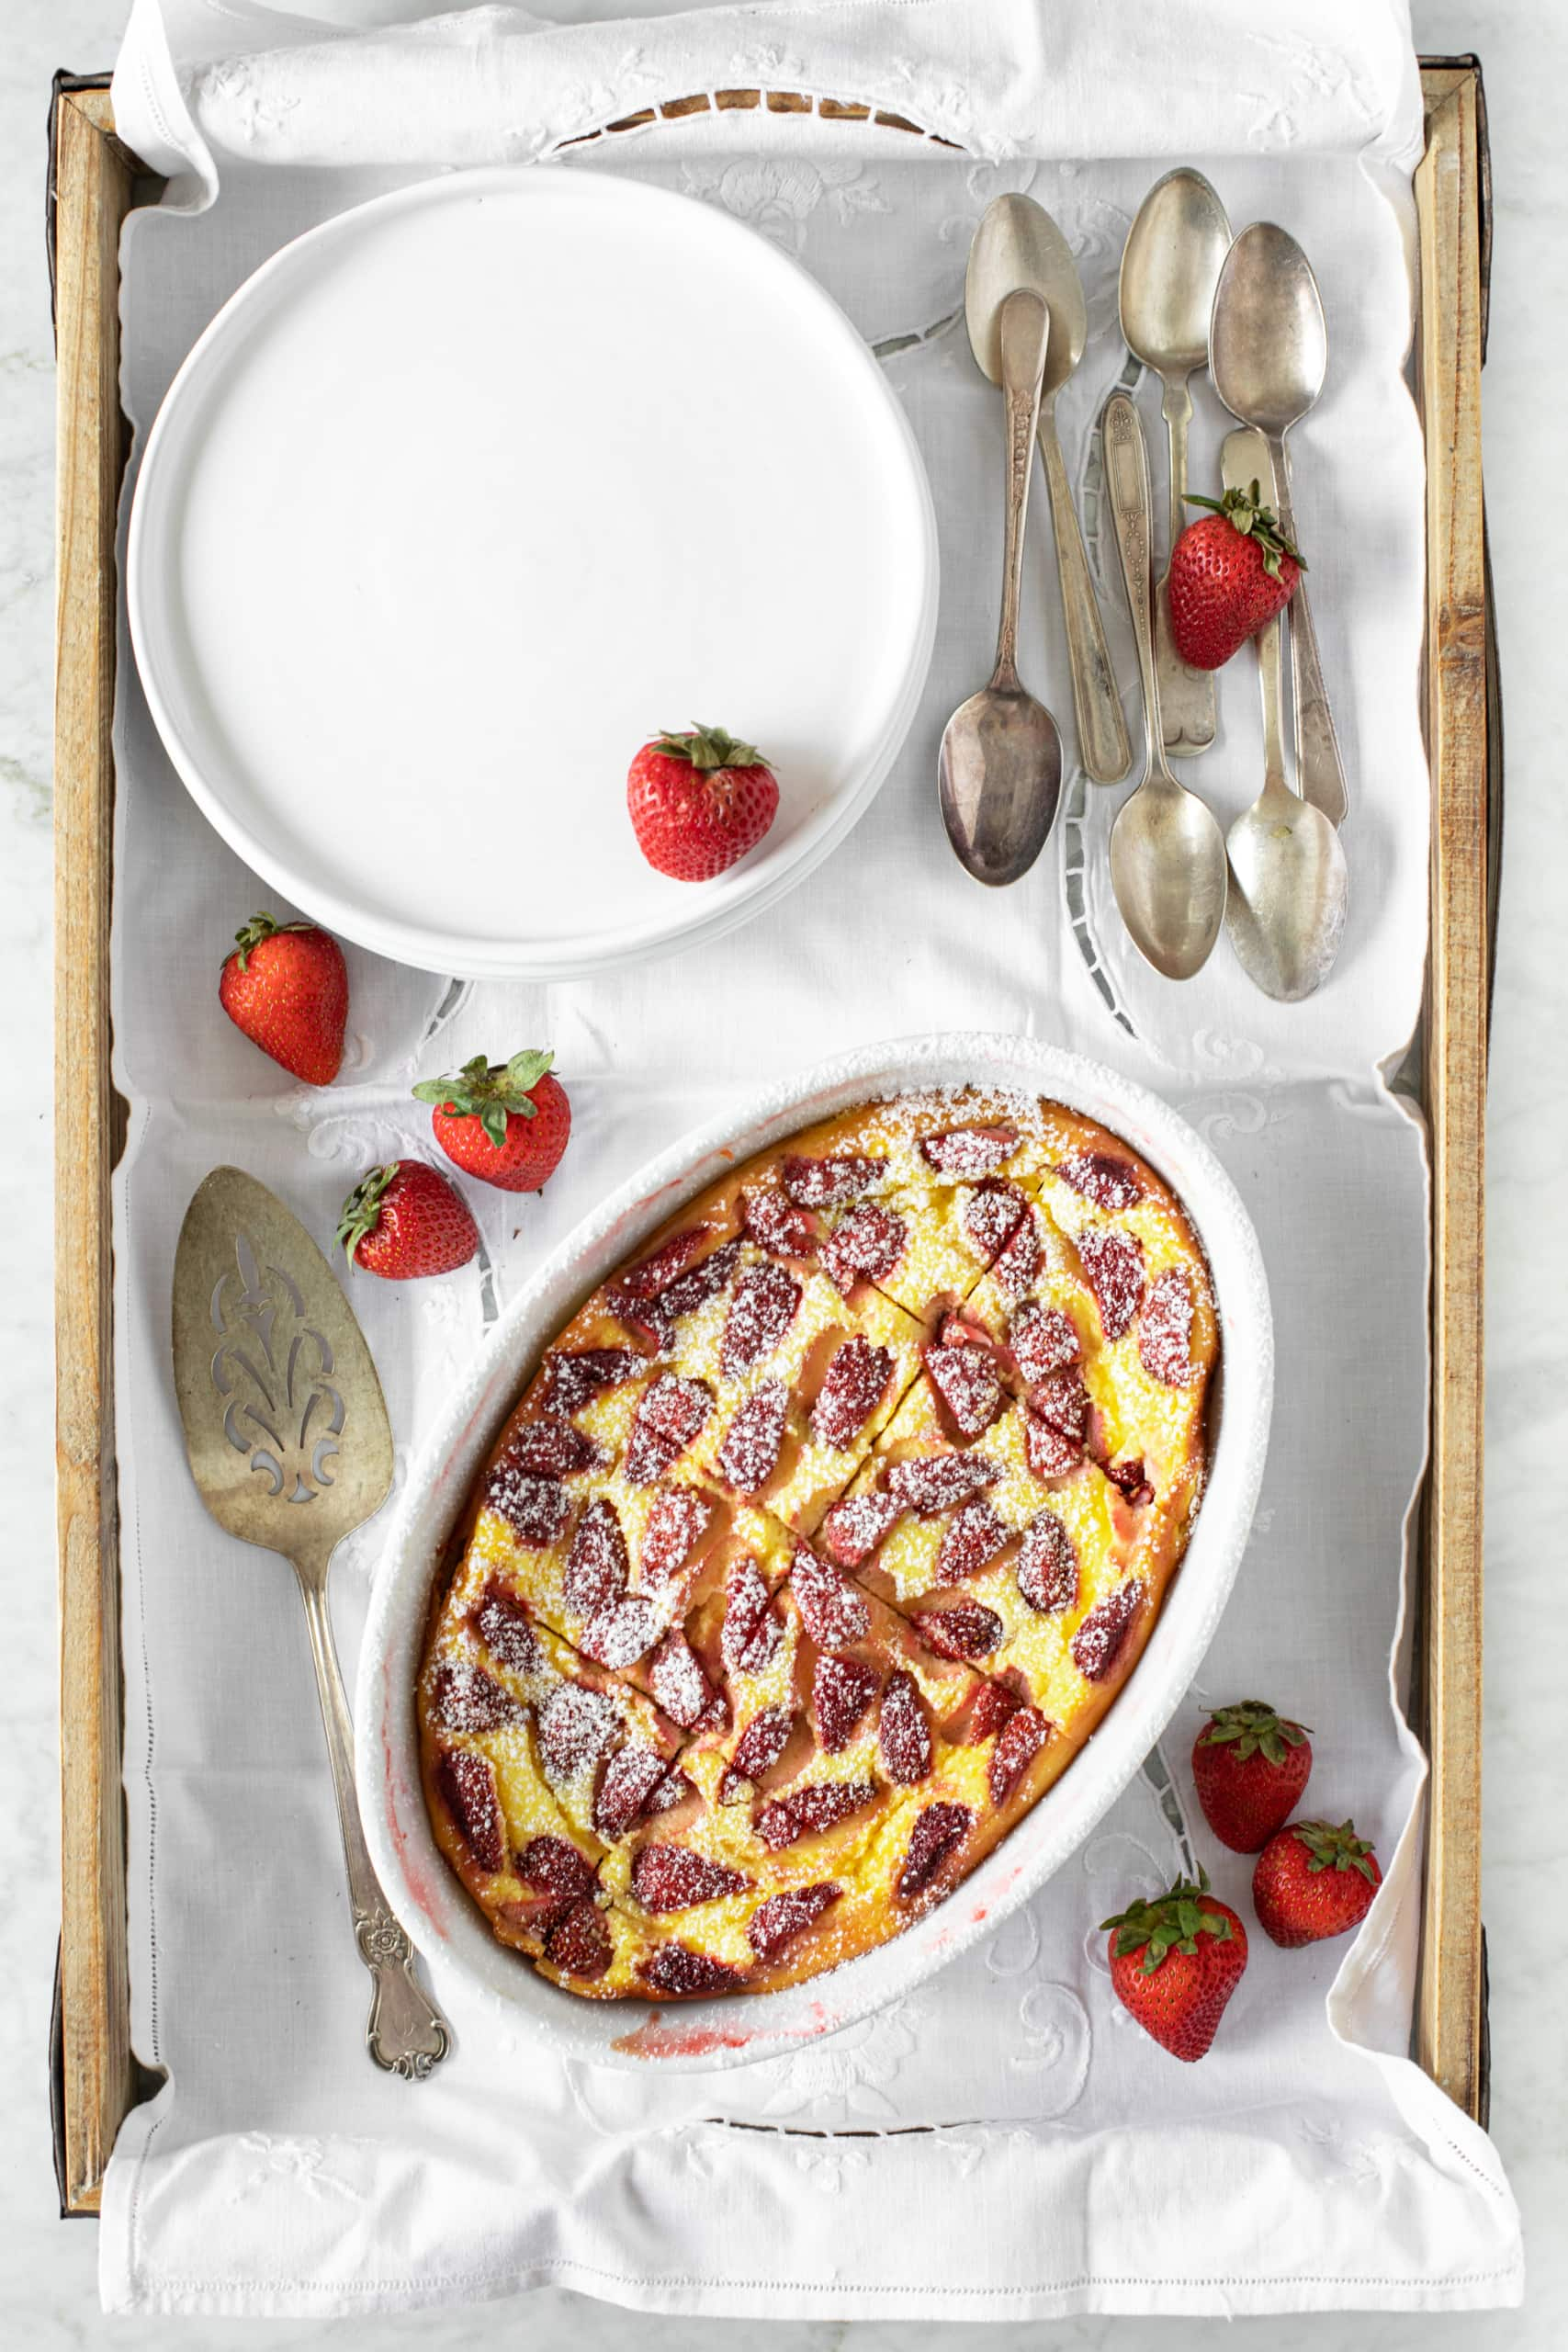 Raspberry Ricotta Soufflé recipe made using strawberries, with sprinkled sugar and fresh whole strawberries | verygoodcook.com